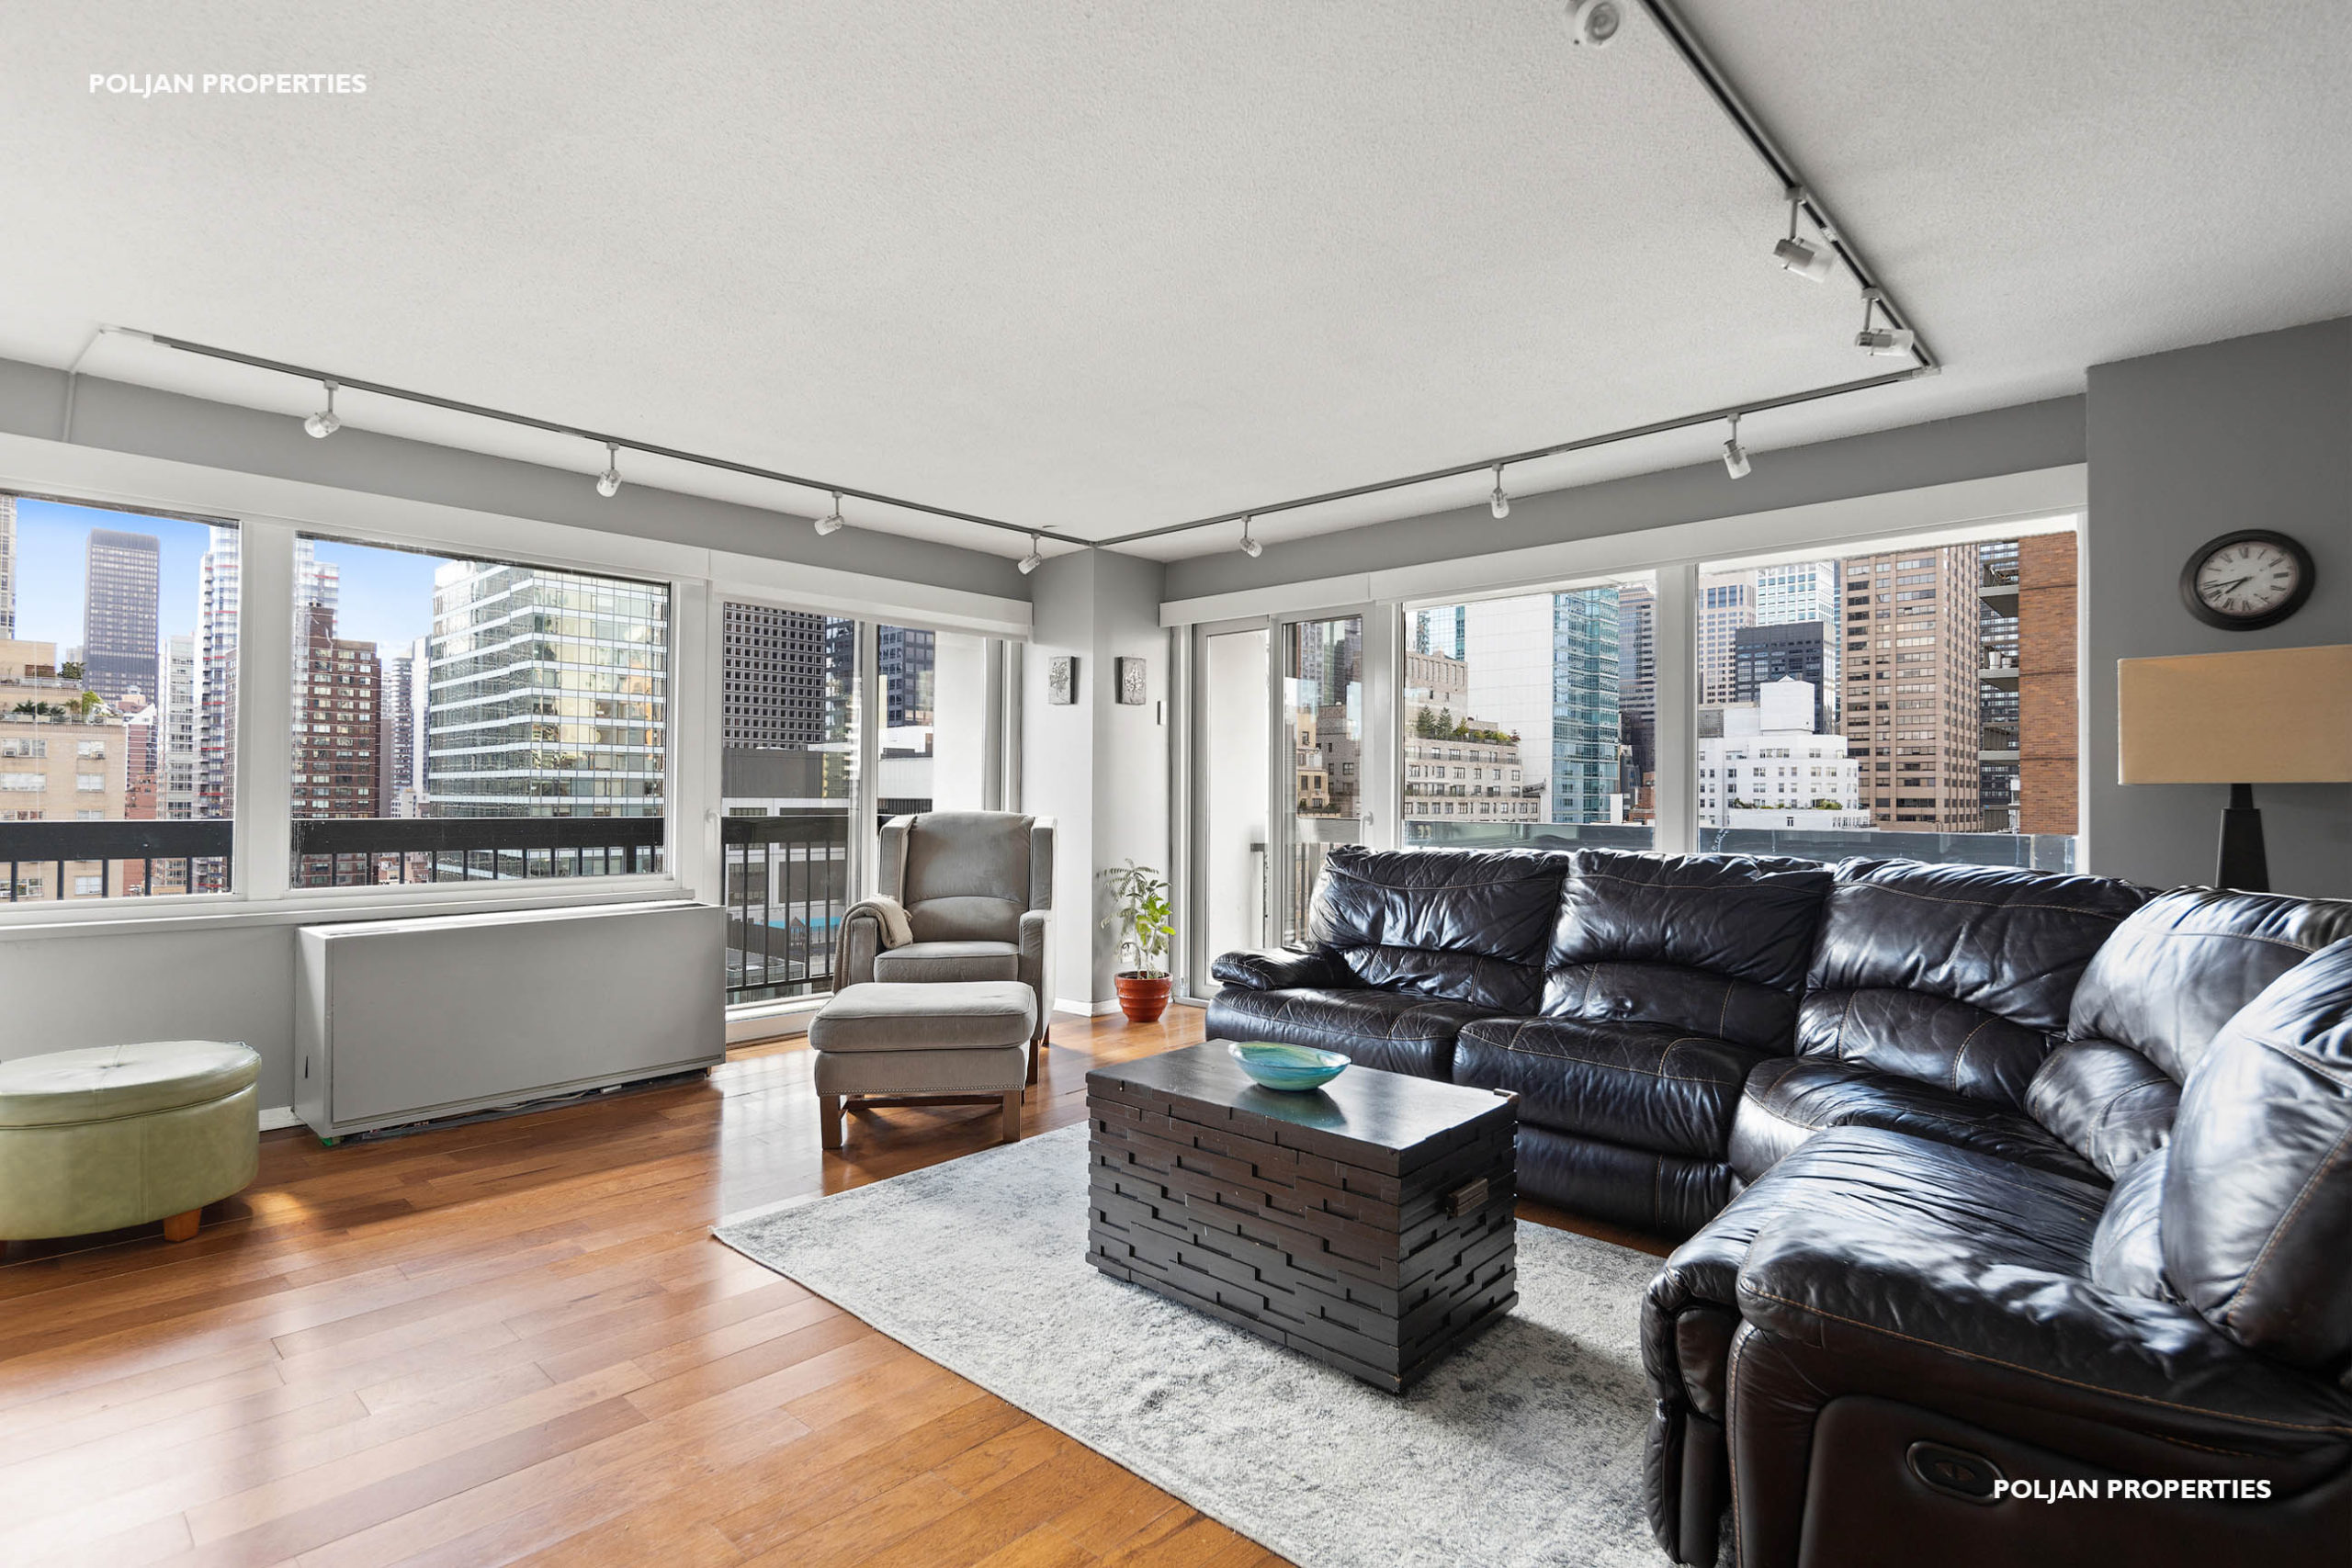 300 East 59th Street - Sutton Place